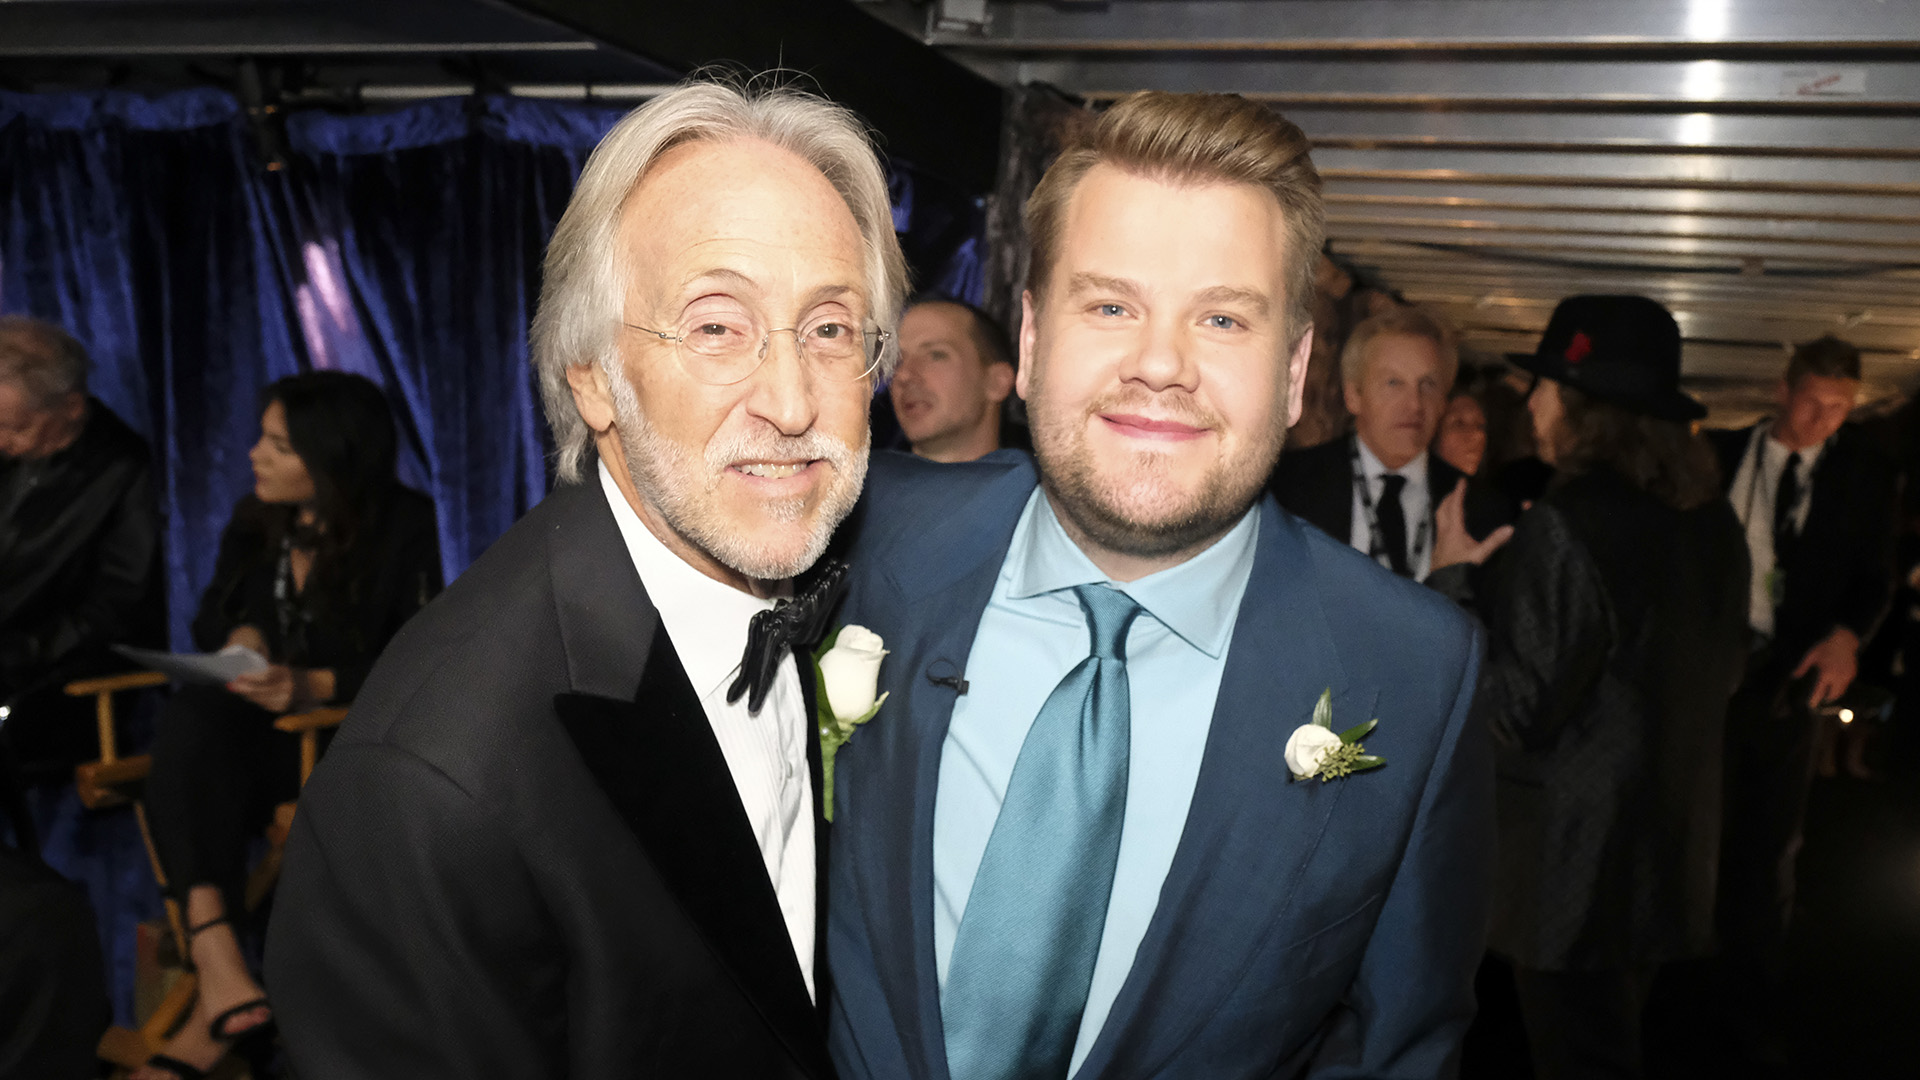 James Corden smiles for the camera with Recording Academy president Neil Portnow.